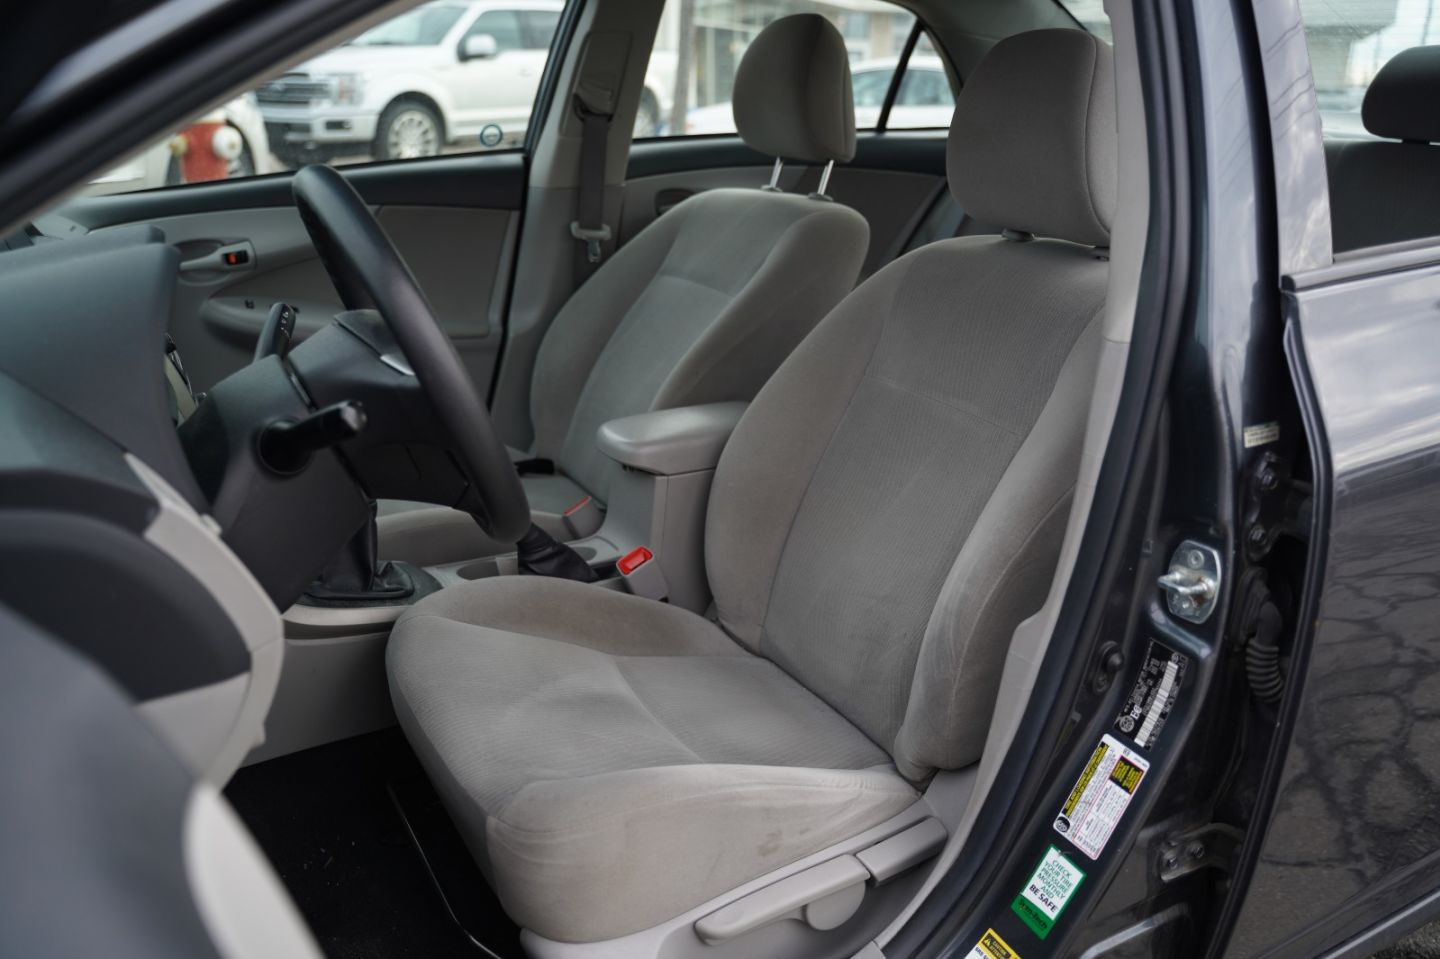 2012 Toyota Corolla CE for sale in Mississauga, Ontario